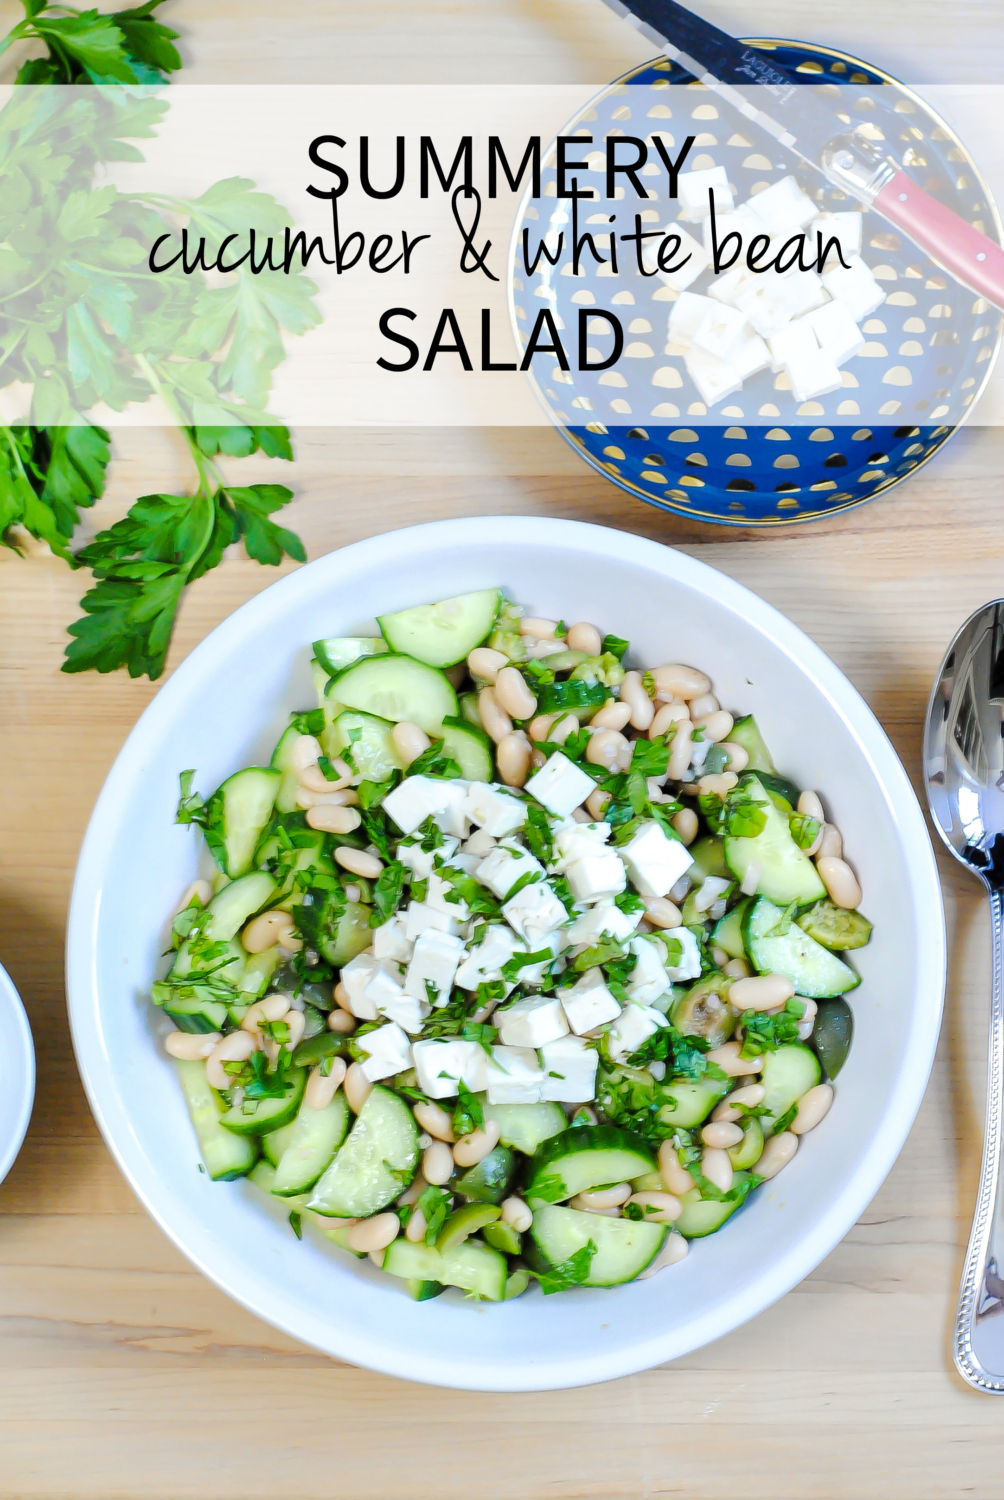 Perfect easy summer cucumber and white bean salad - so simple and so super delicious! An excellent vegetarian meal or side salad with grilled fish and meats.